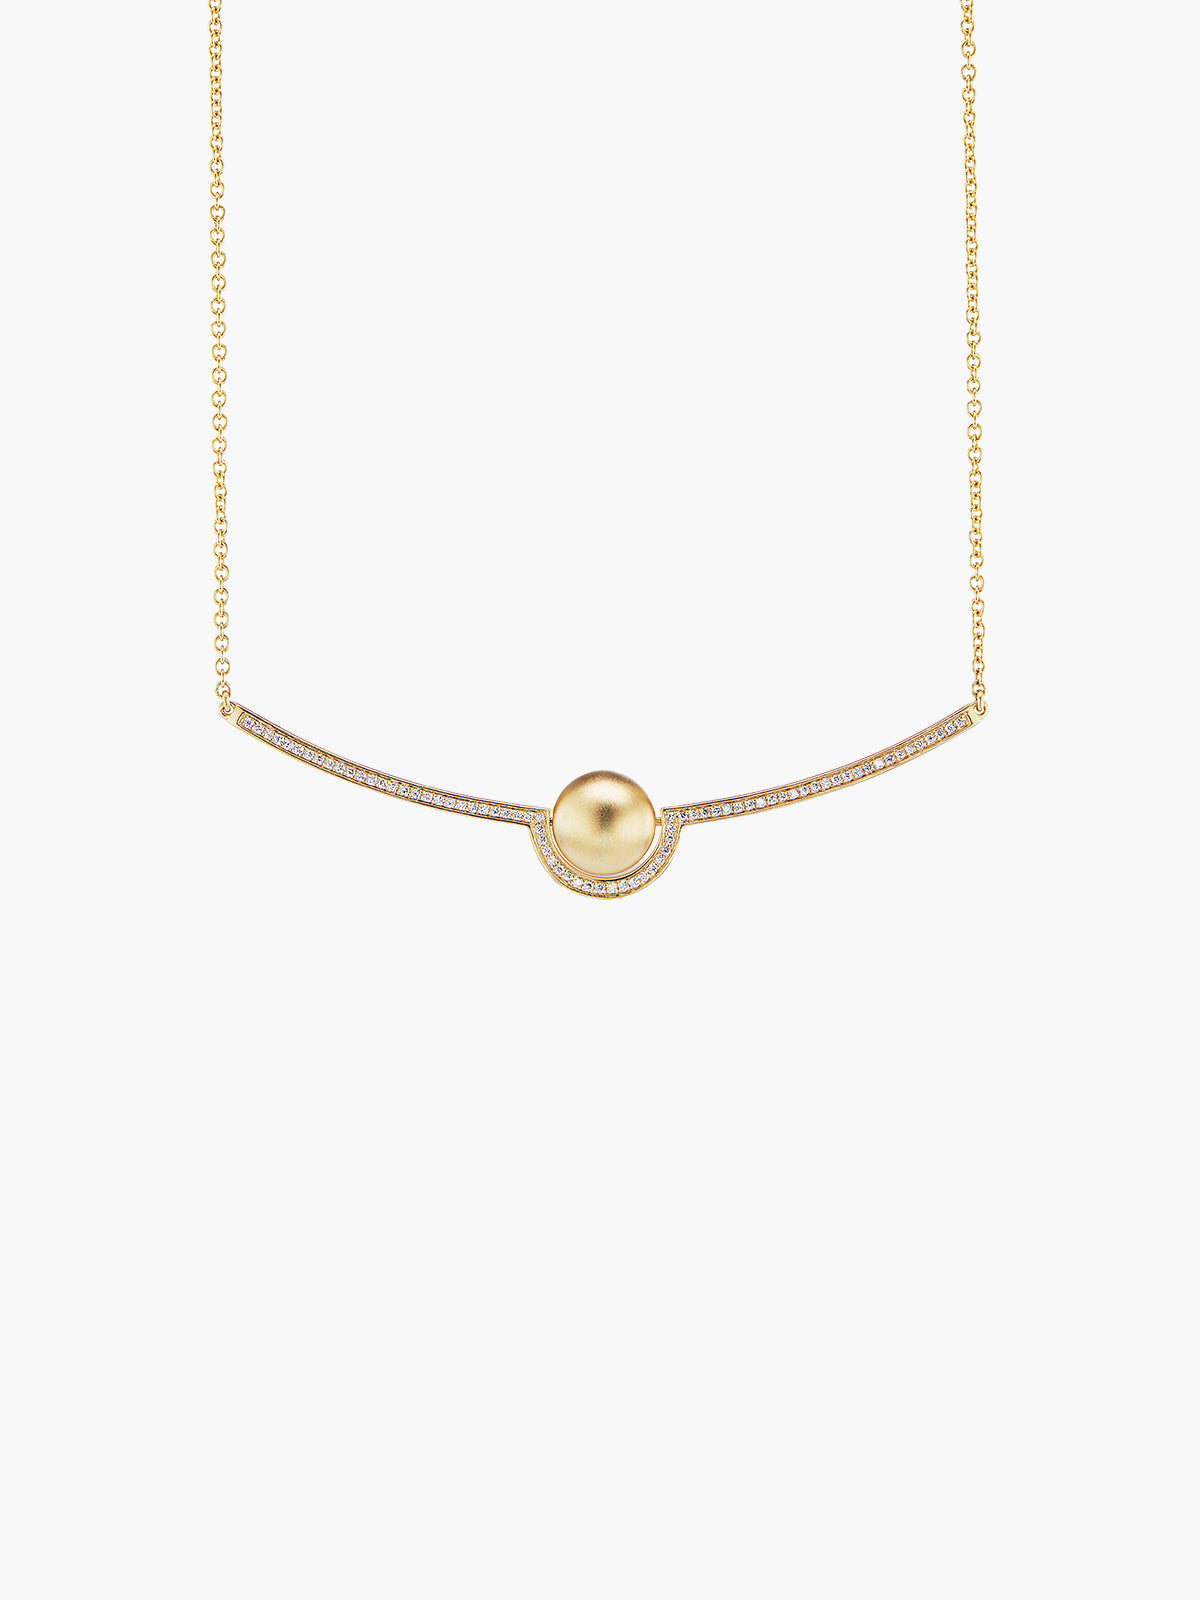 Exclusive Boule D'Or Crescent Pendant | Matte Exclusive Boule D'Or Crescent Pendant | Matte